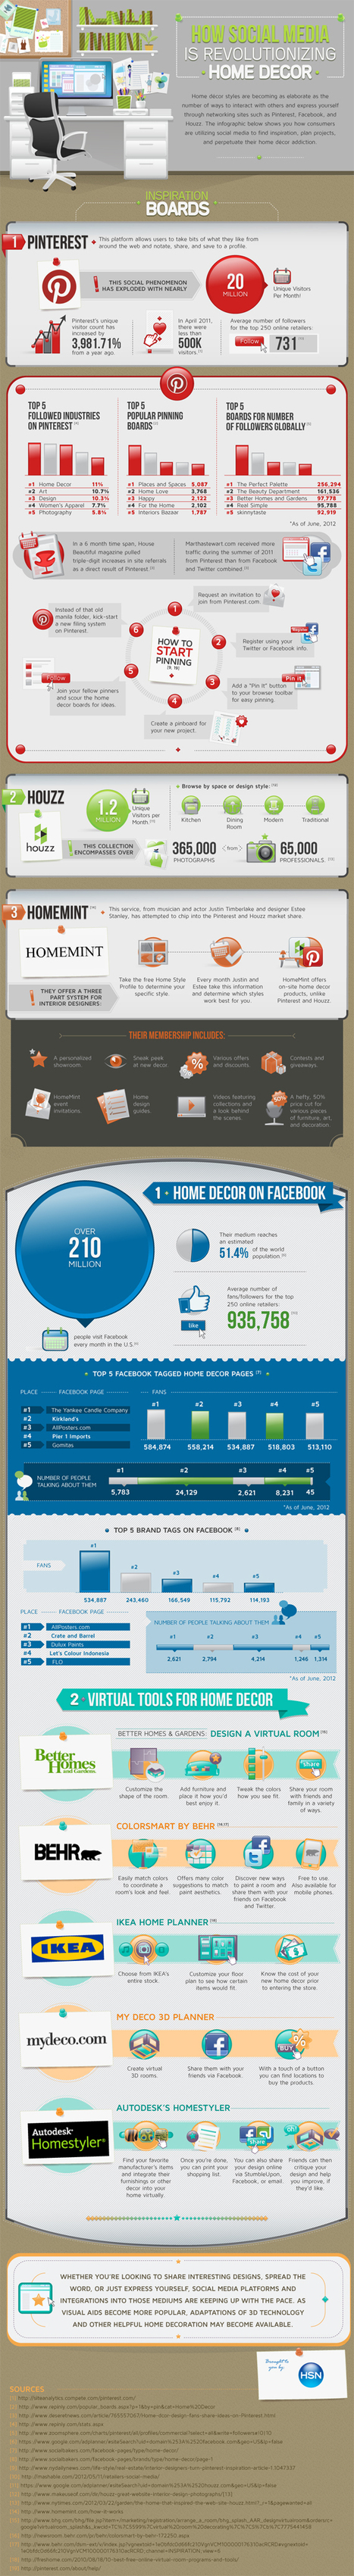 How Pinterest Is Revolutionizing The Home Decor Industry [Infographic] | MarketingHits | Scoop.it